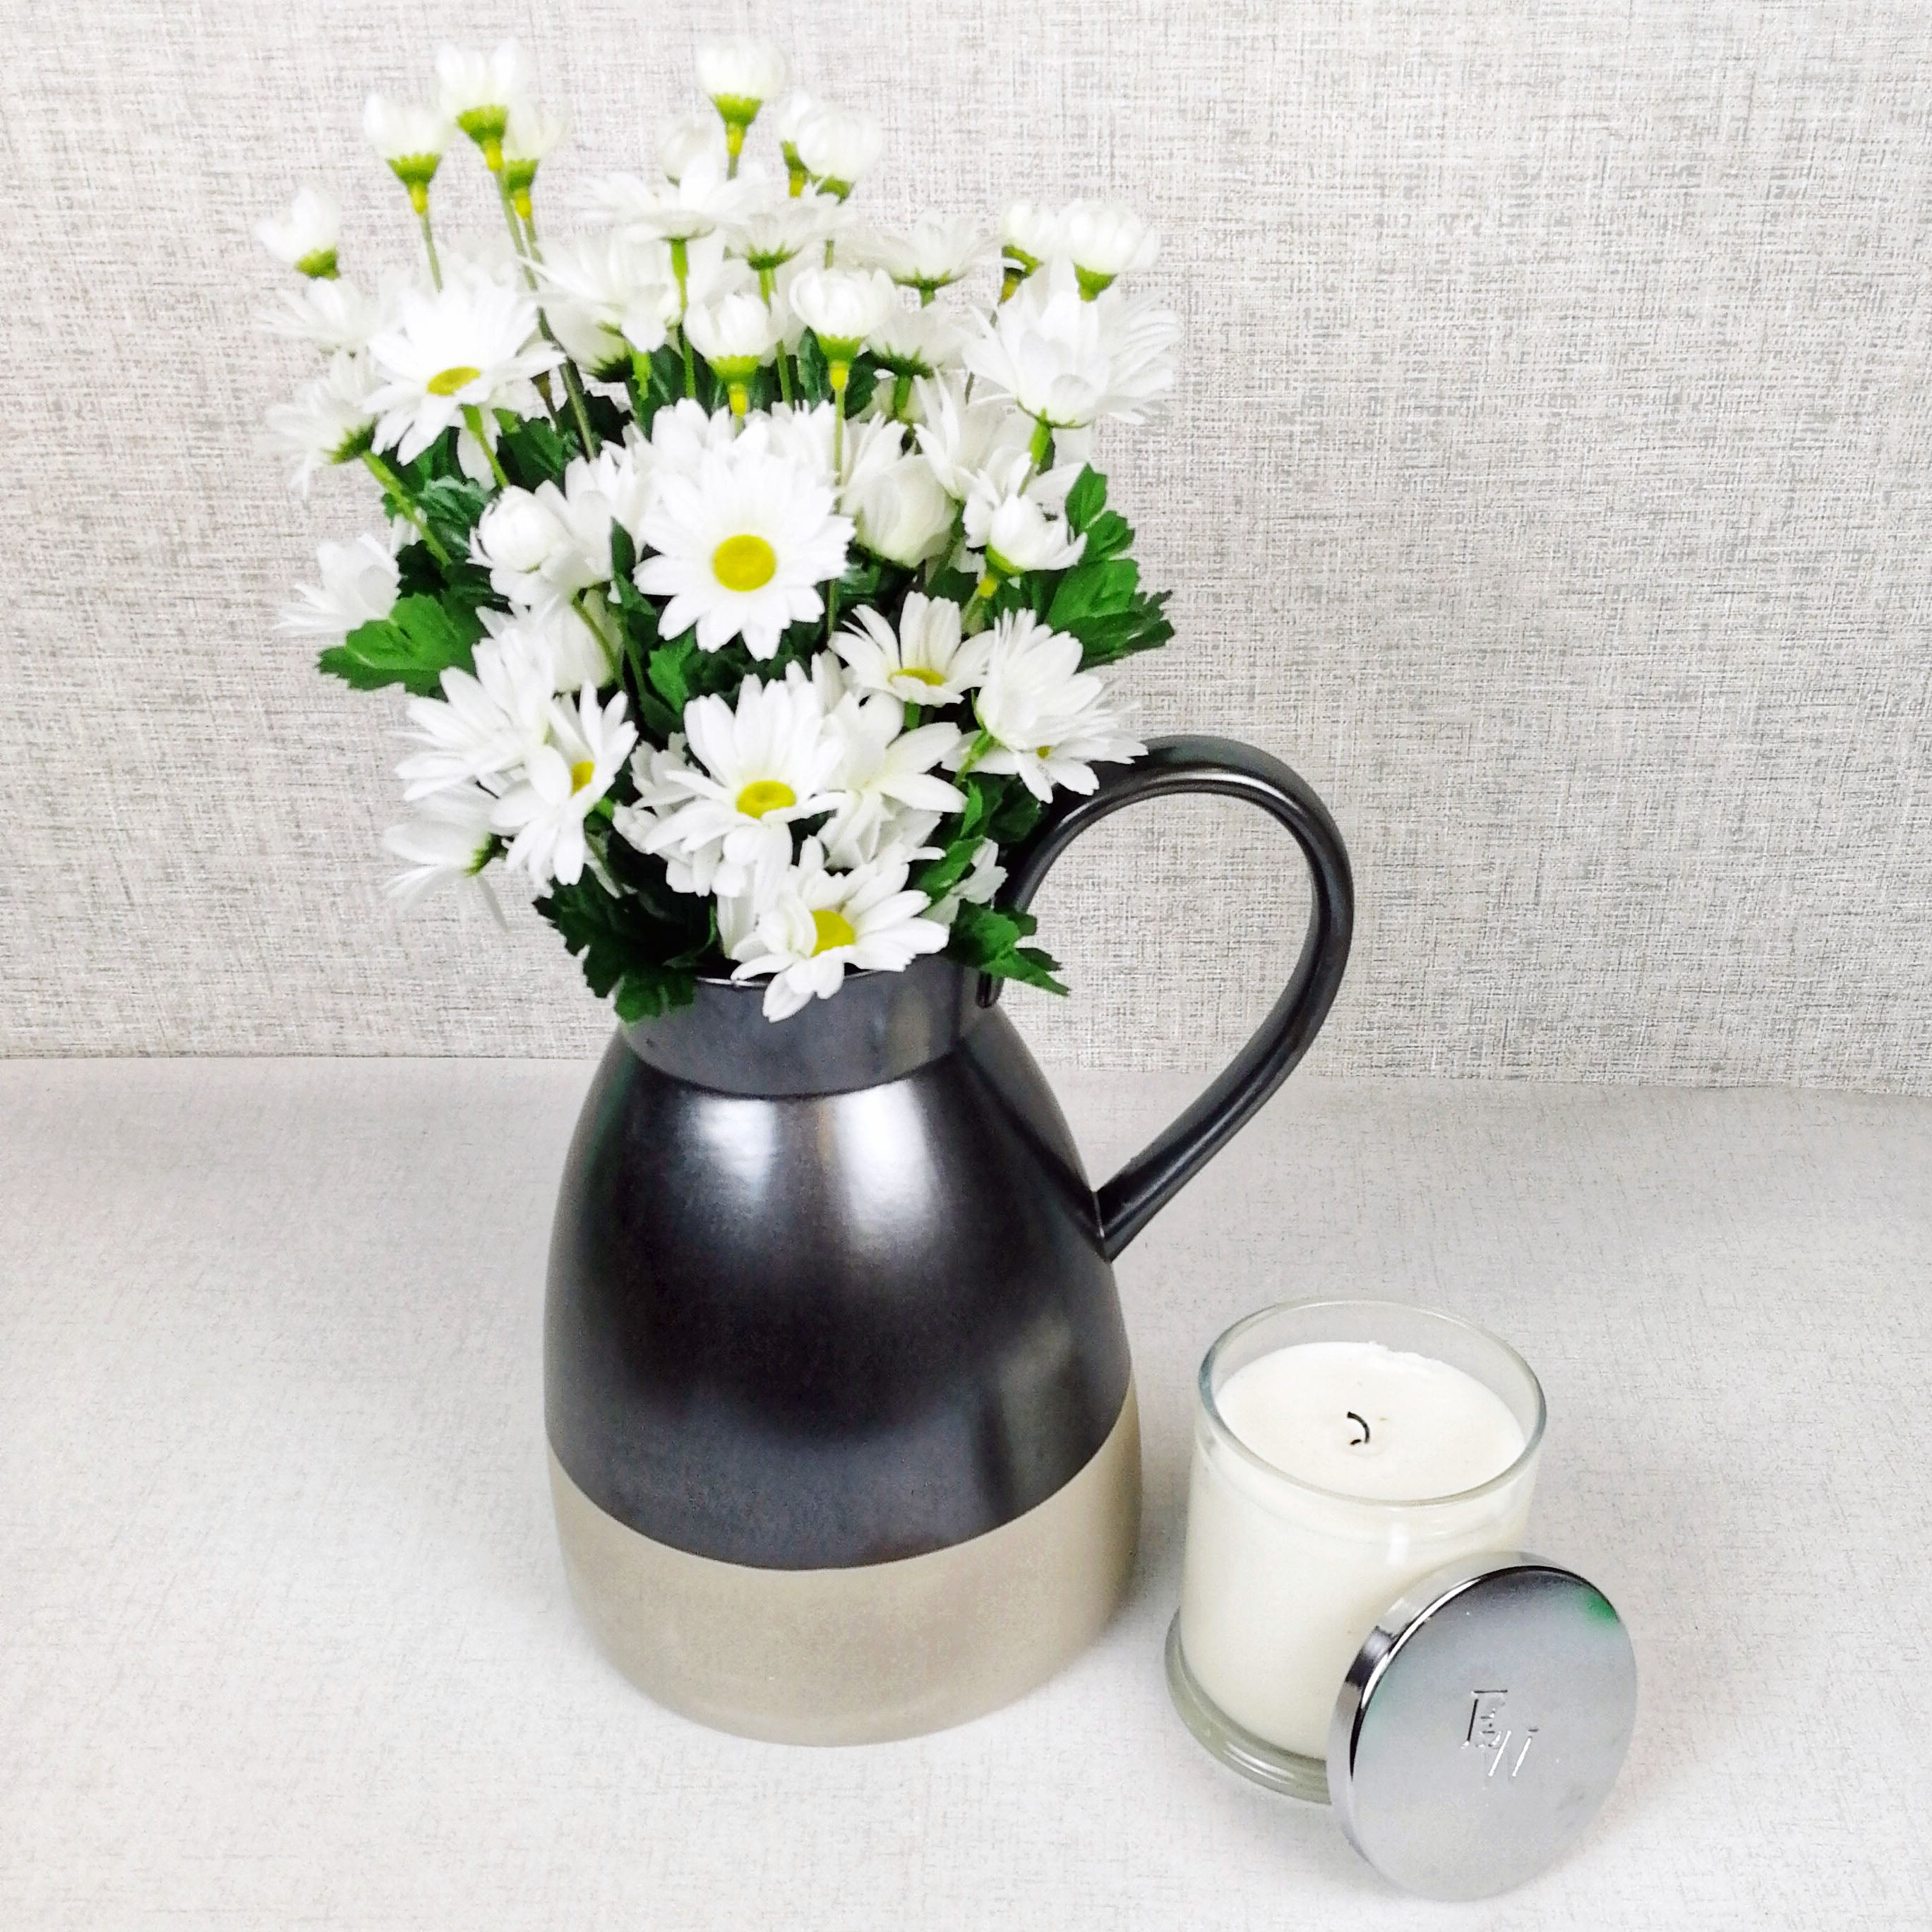 Metallic Style Ceramic Jug with candle and flowers